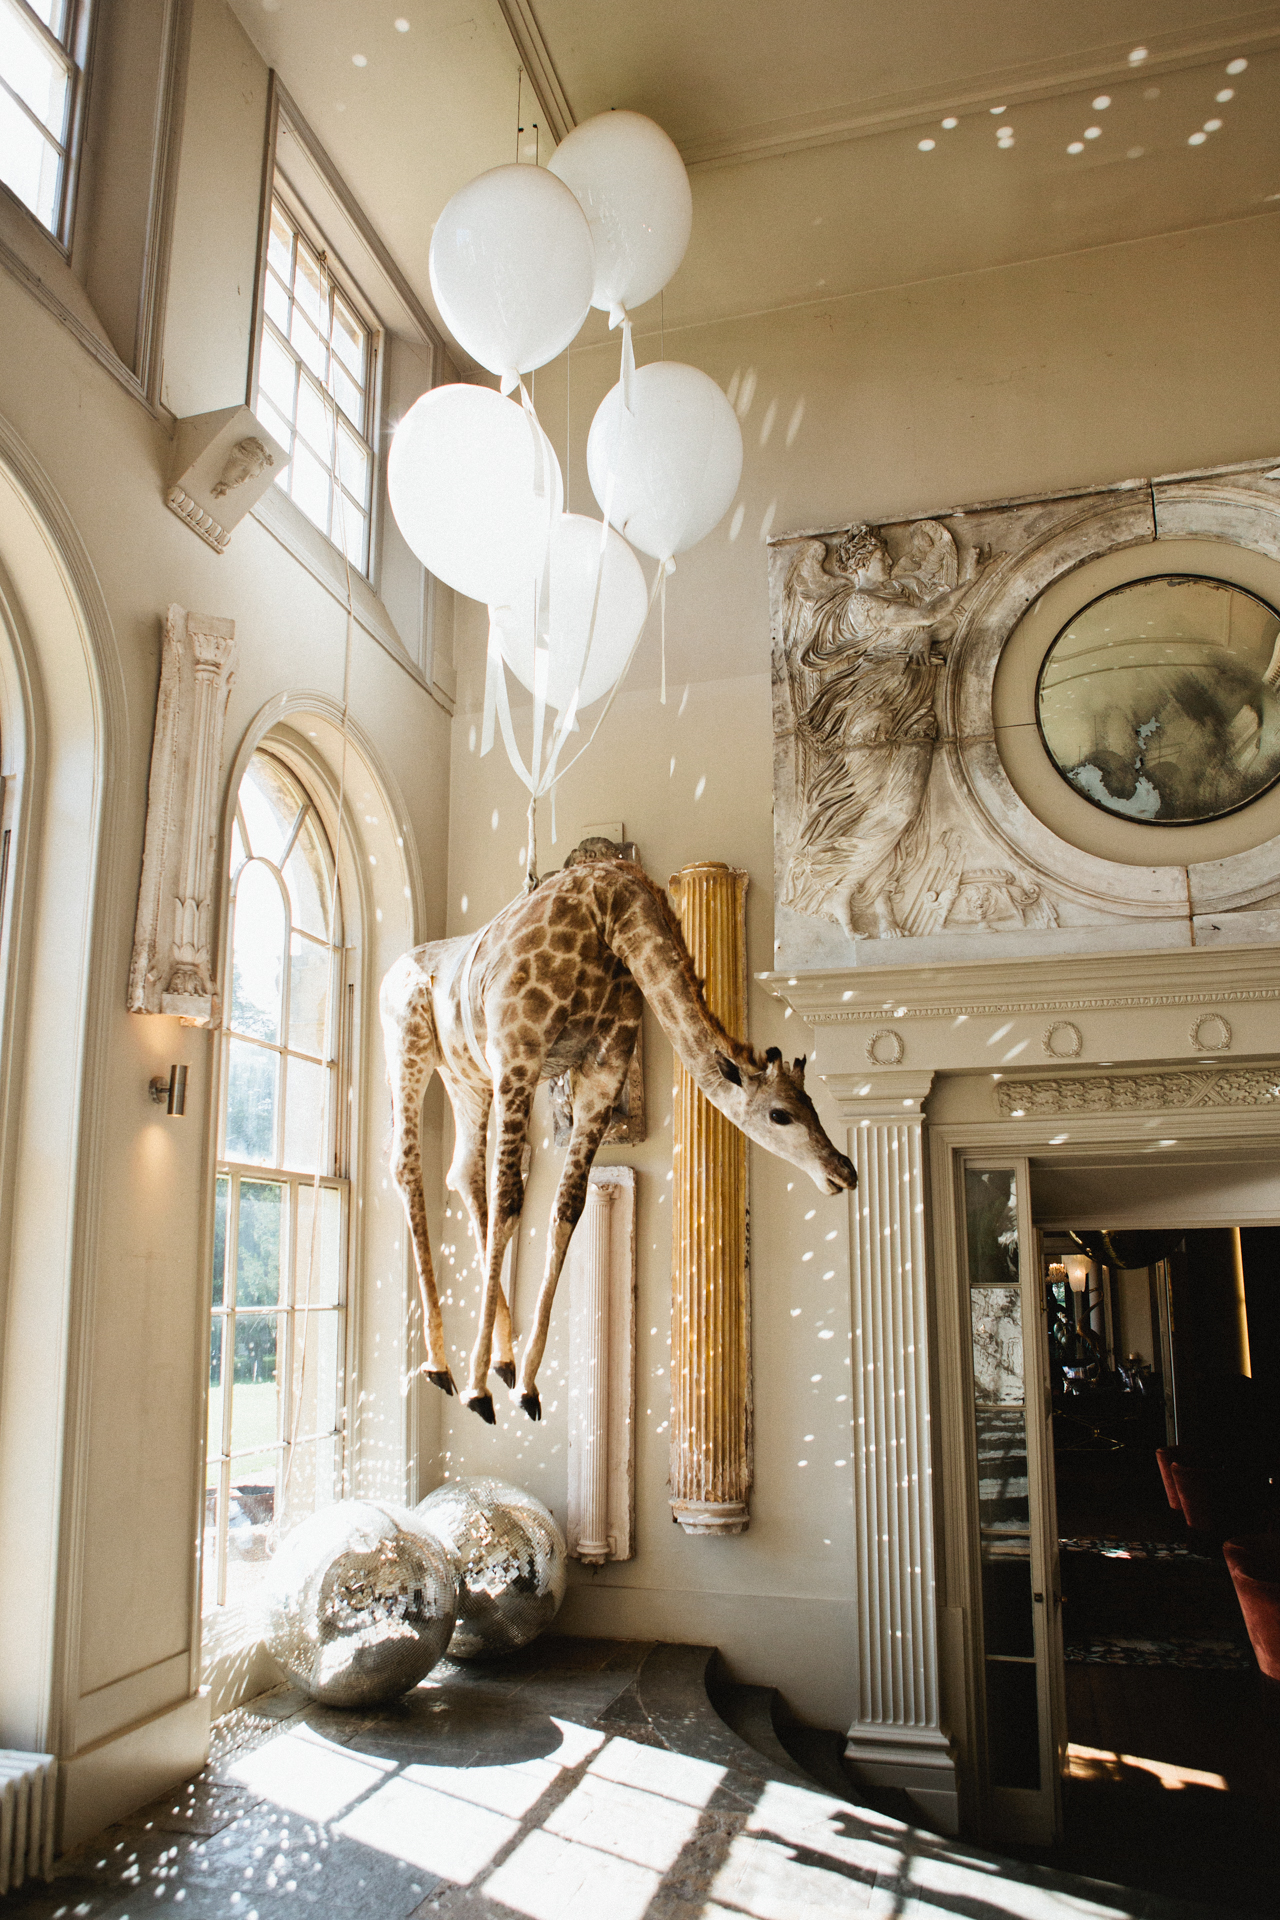 A full size taxidermy giraffe hanging up from the ceiling at Aynhoe Park wedding venue